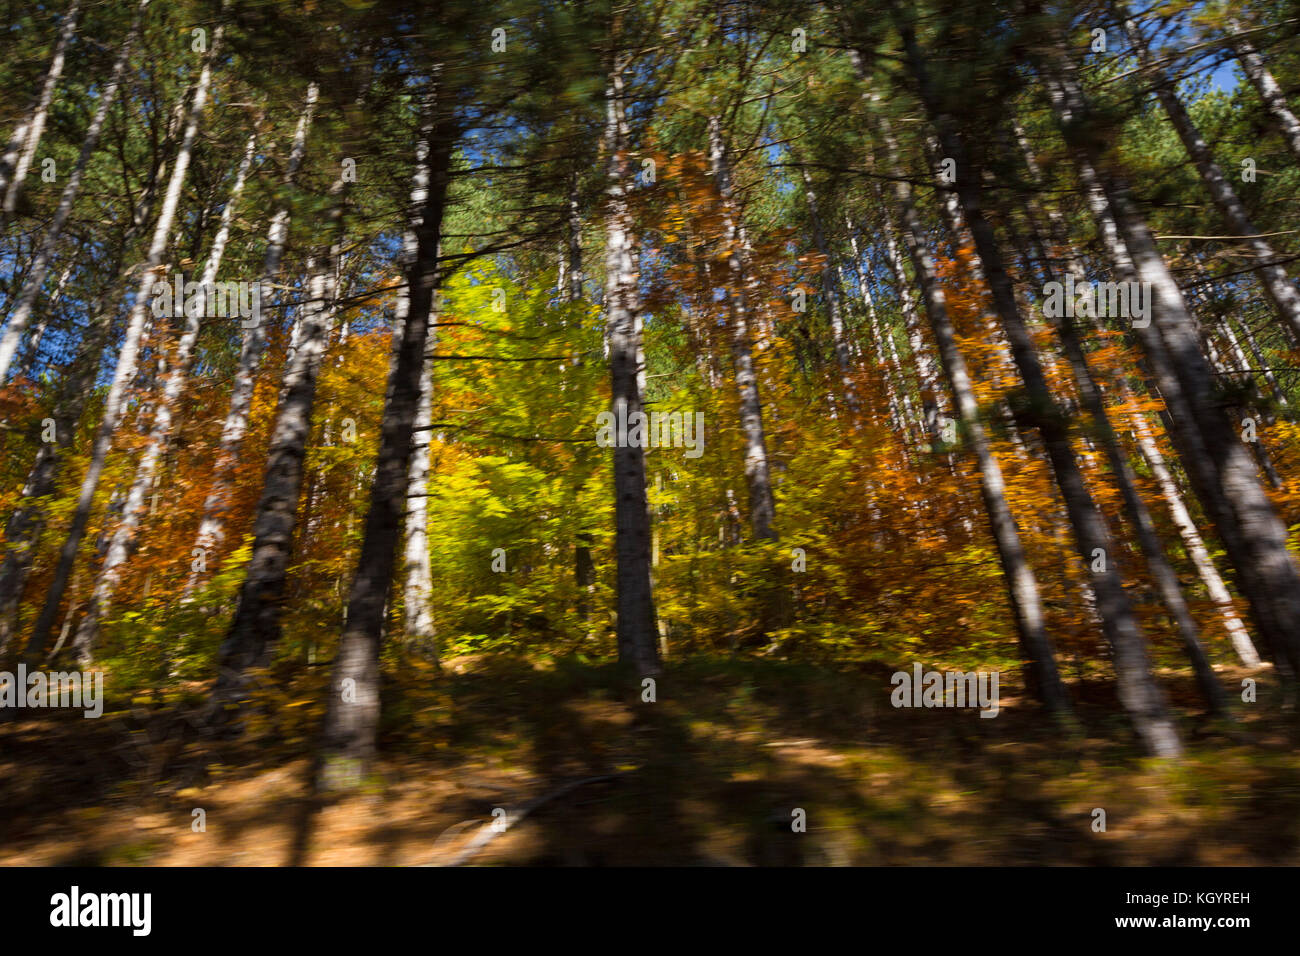 Abruzzo, Italy - Autumn colors - Stock Image